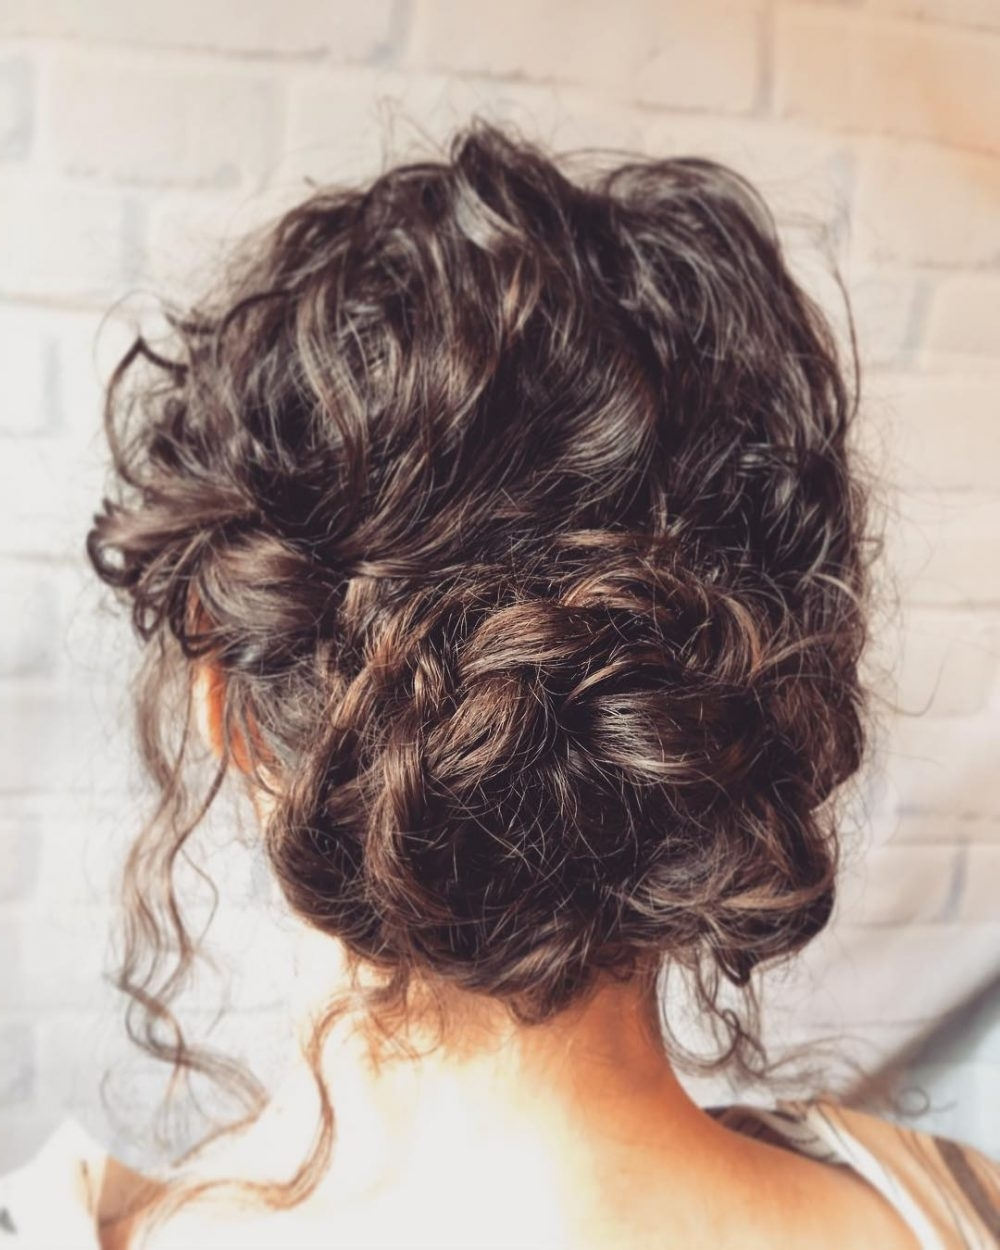 Curly Hairstyles For Prom With Curly Hair Updo Hairstyles (View 3 of 15)